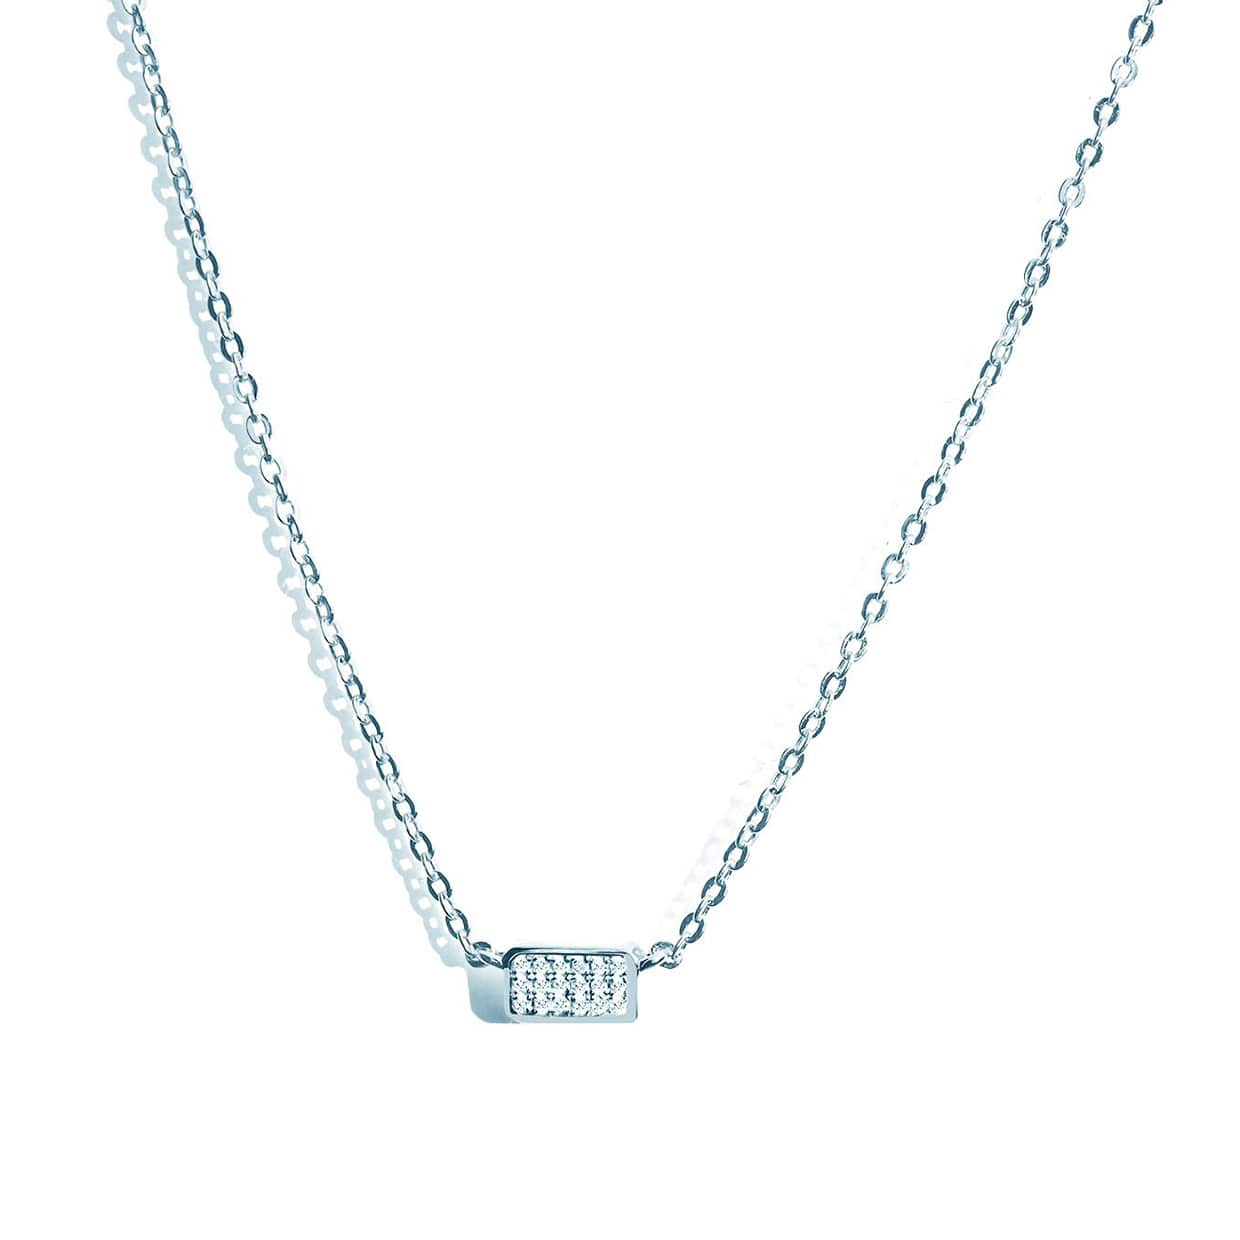 Oxford Silver Petite Necklace - Abelstedt